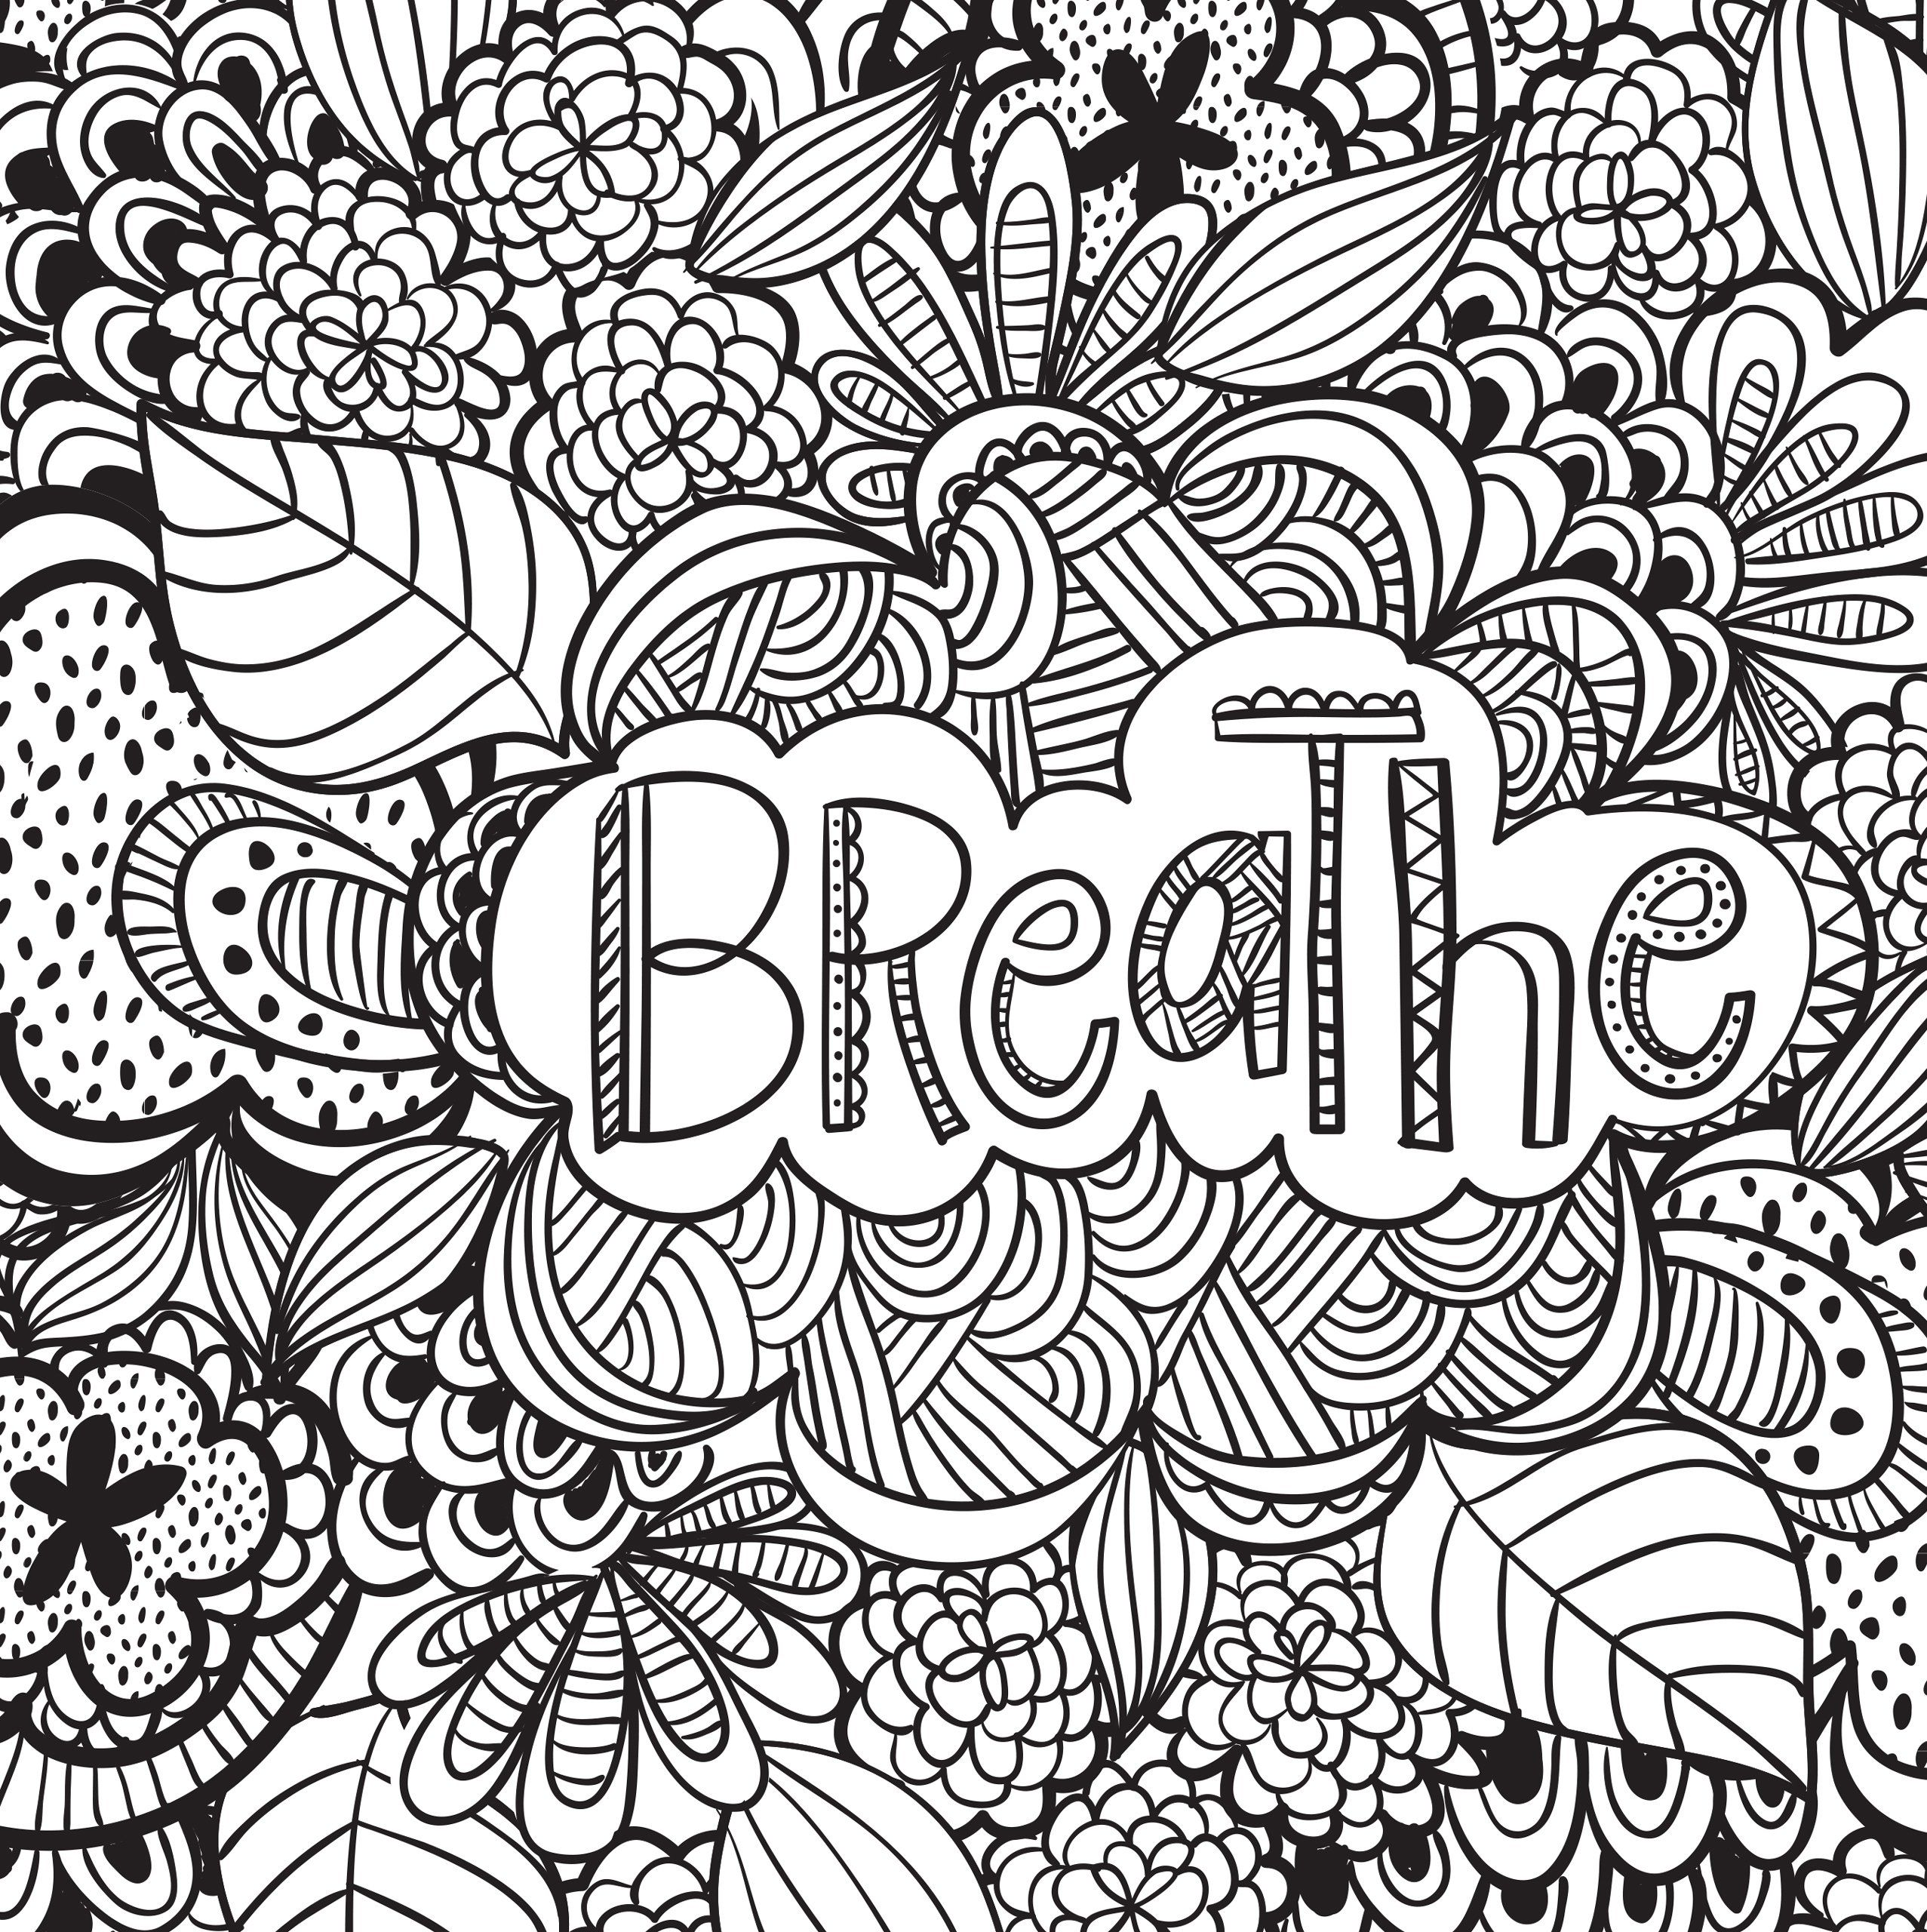 Stress relief coloring pages - Joyful Inspiration Adult Coloring Book 31 Stress Relieving Designs Artists Coloring